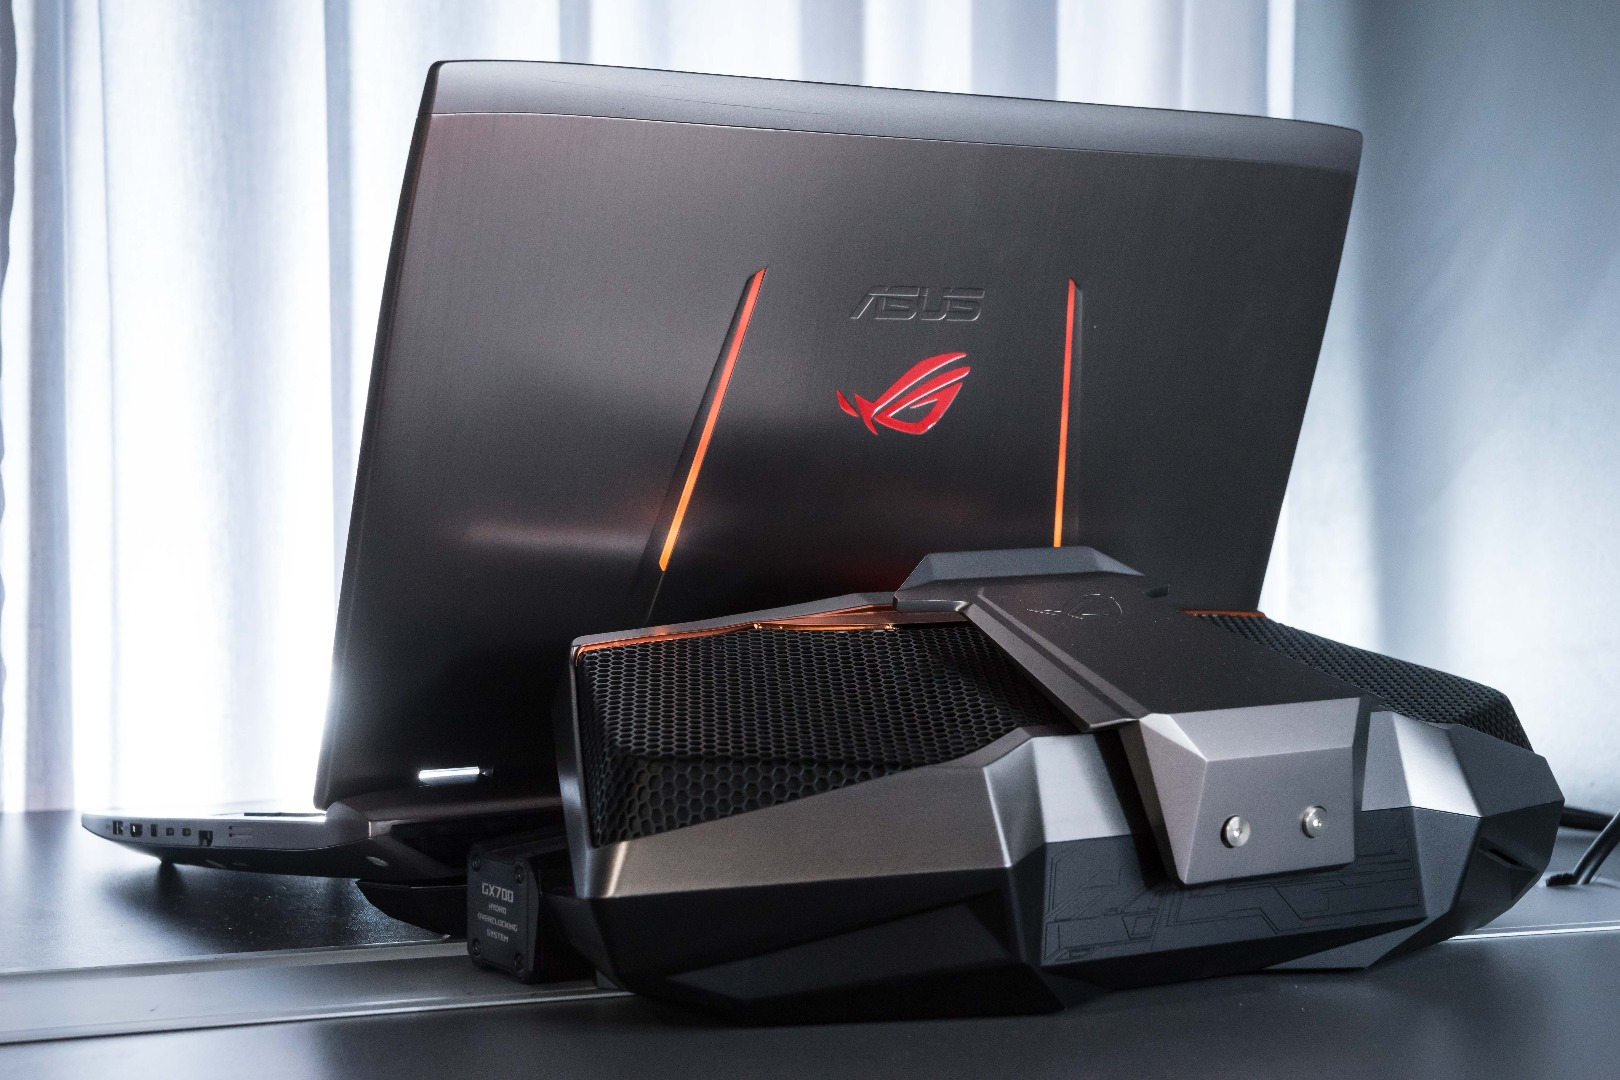 Photo of Asus rioting with a laptop with water cooling position